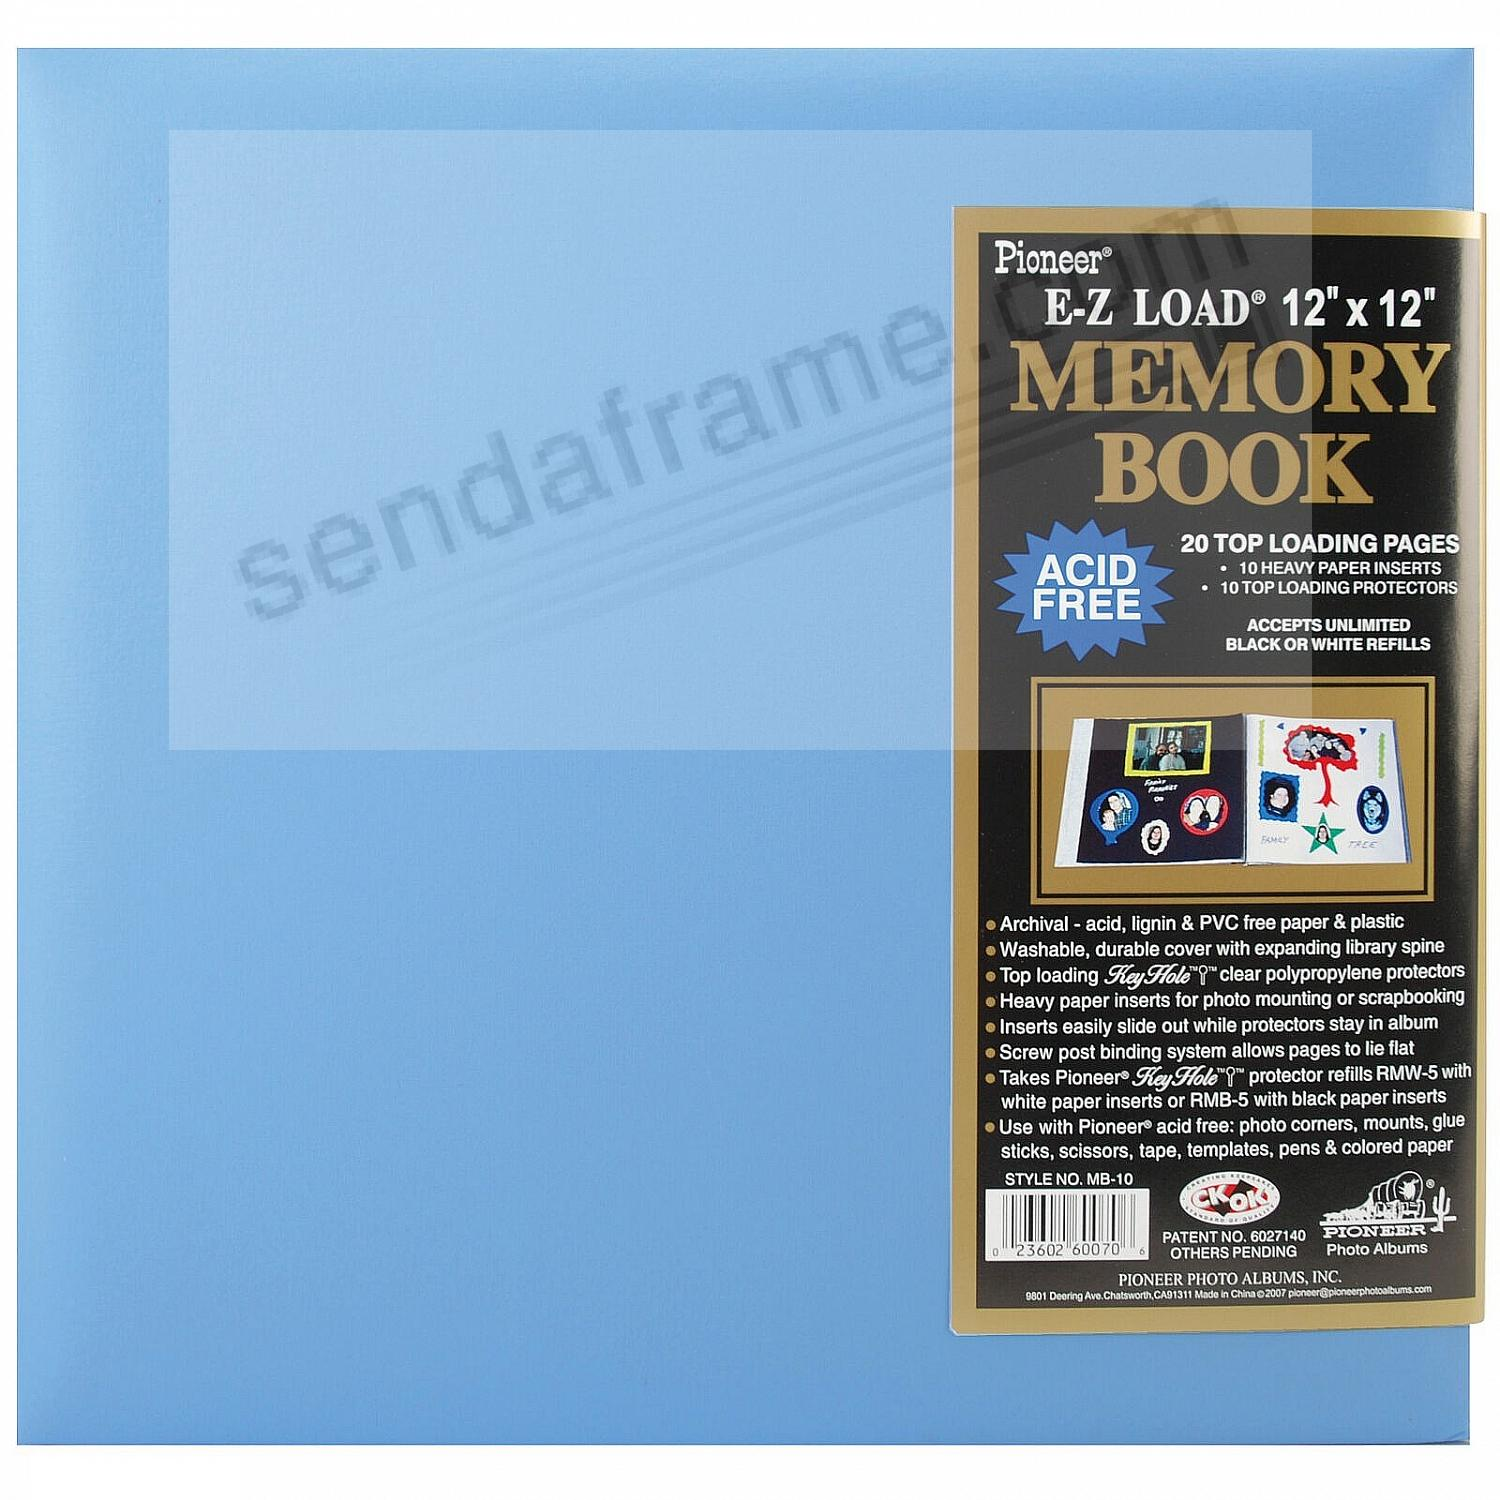 BABY-BLUE 12x12 Leatherette Scrapbook album by Pioneer®